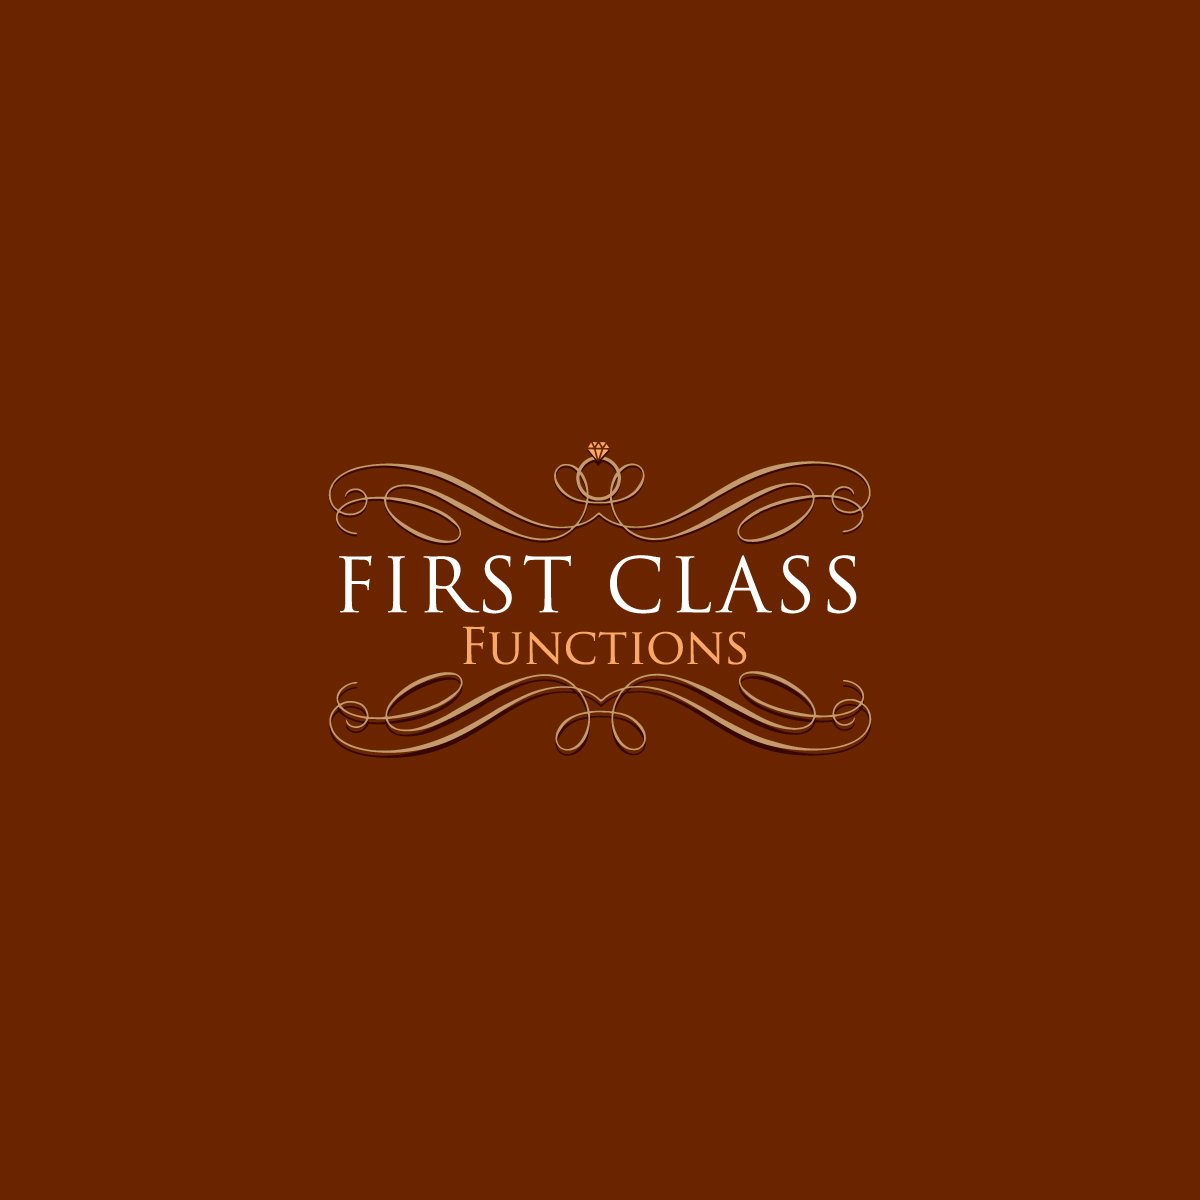 Elegant Professional Events Logo Design For First Class Functions By E Graphics Design 16134462